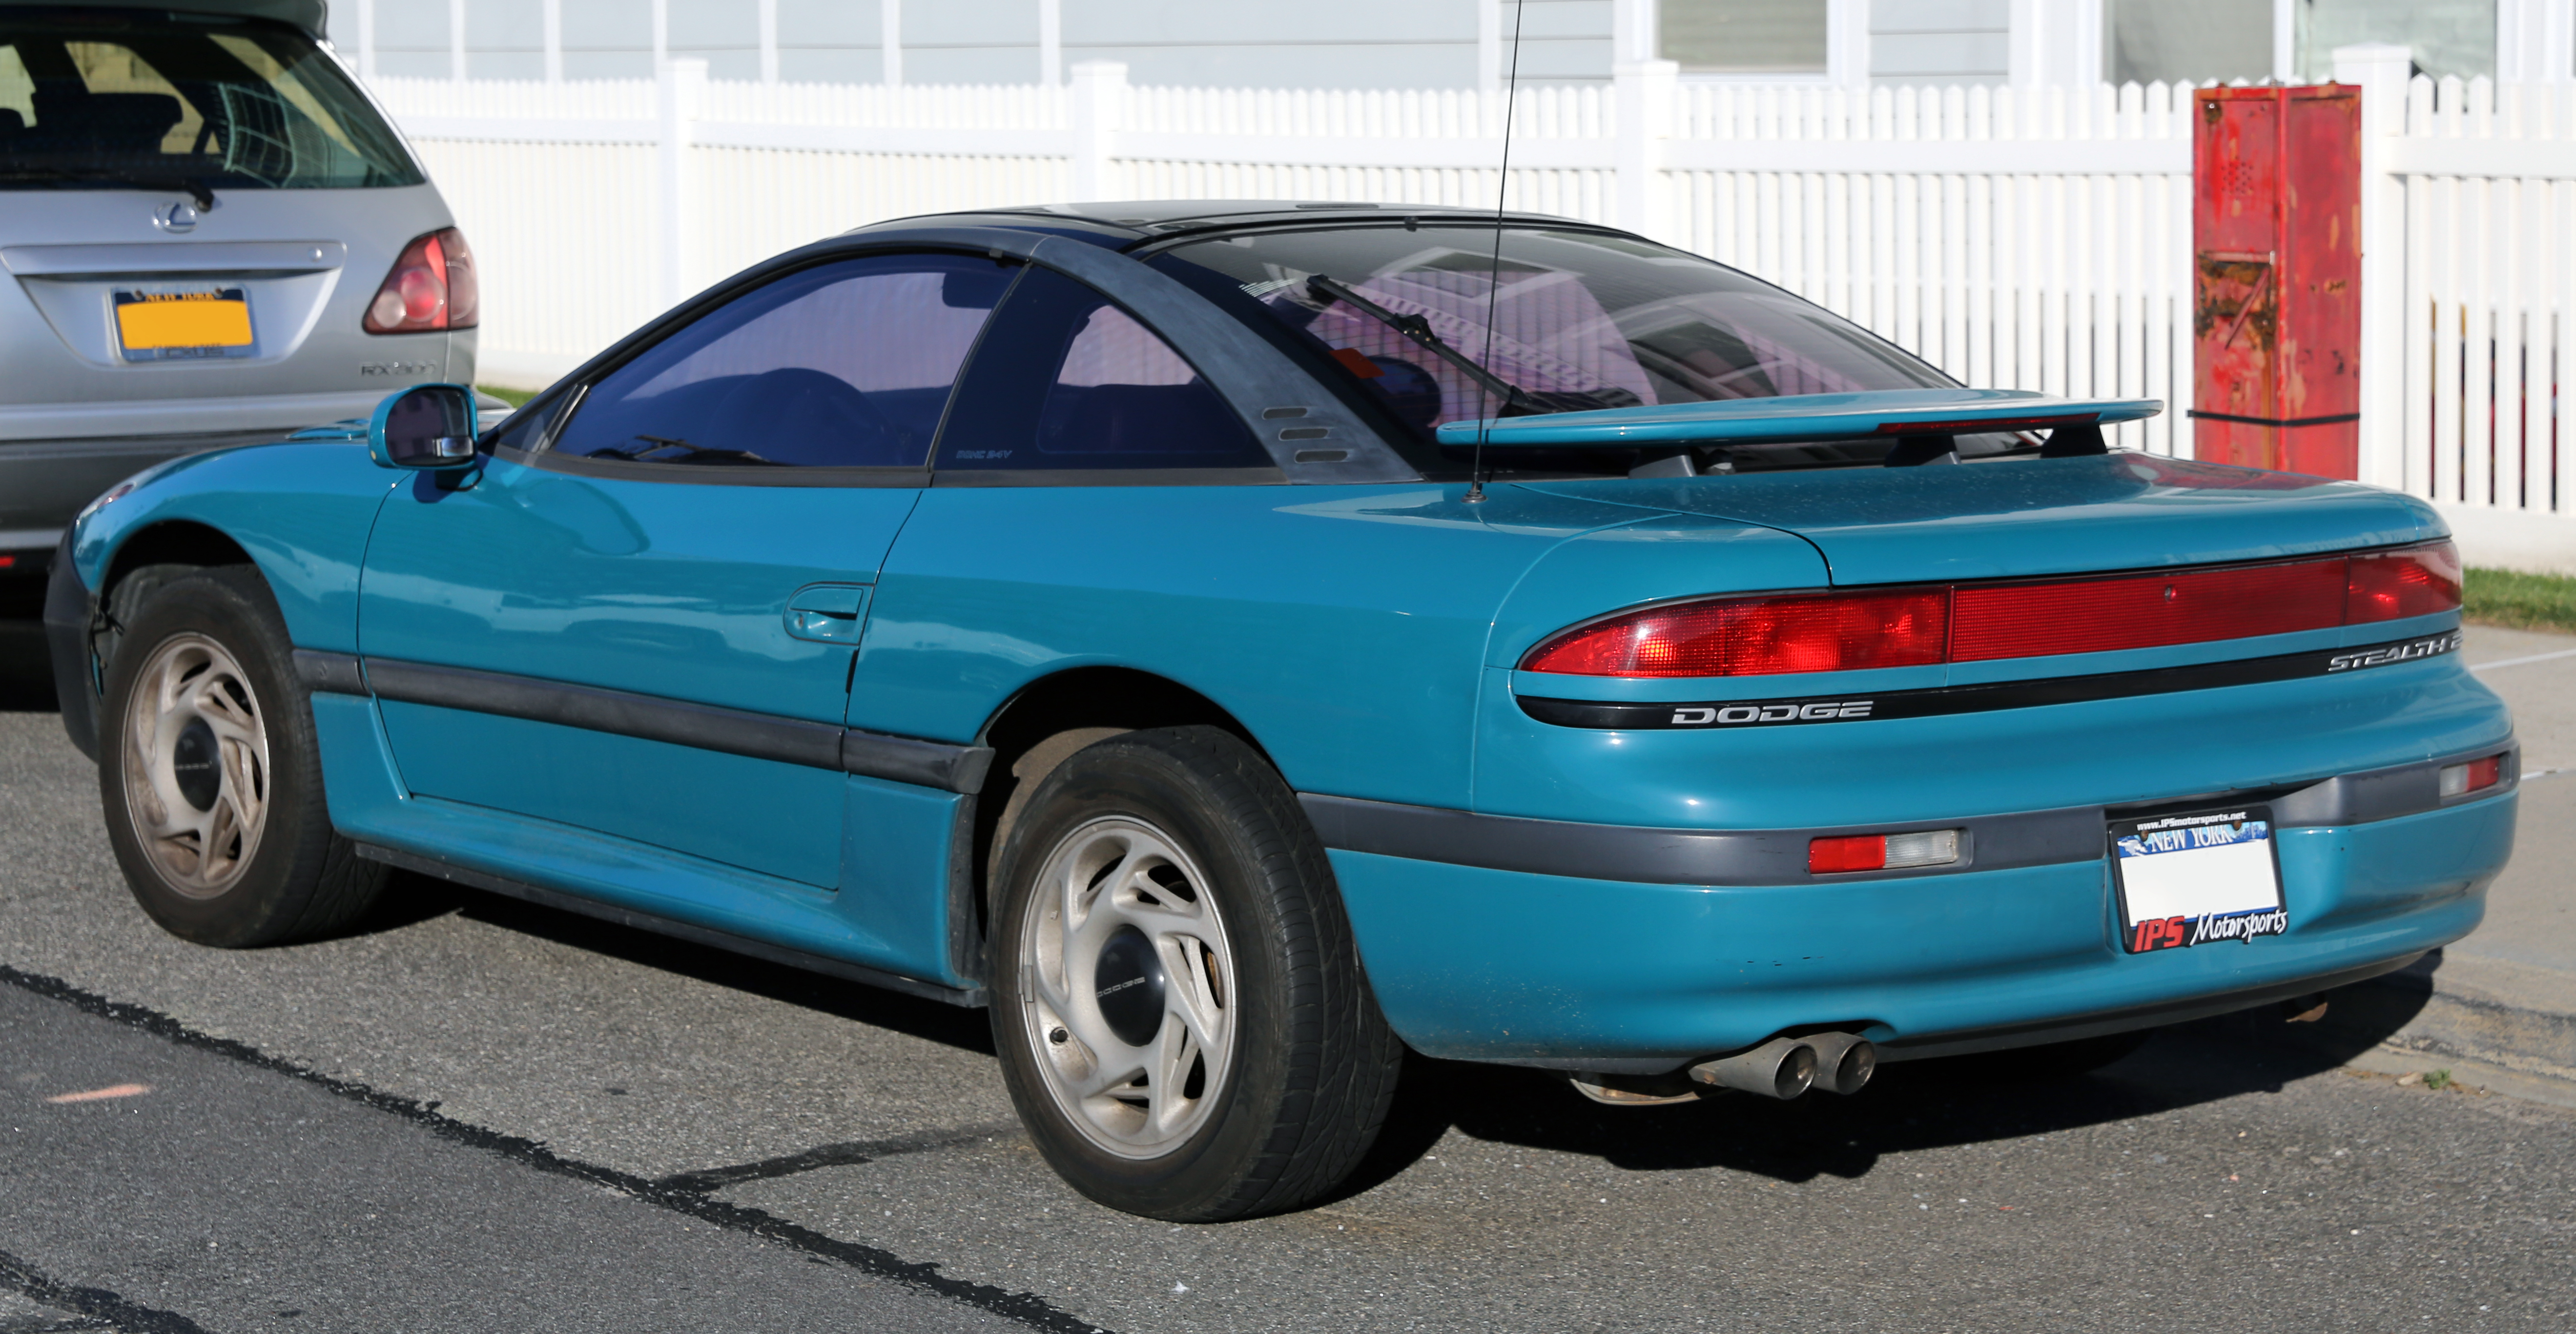 File:1993 Dodge Stealth ES, rear left in turquoise.jpg - Wikimedia Commons